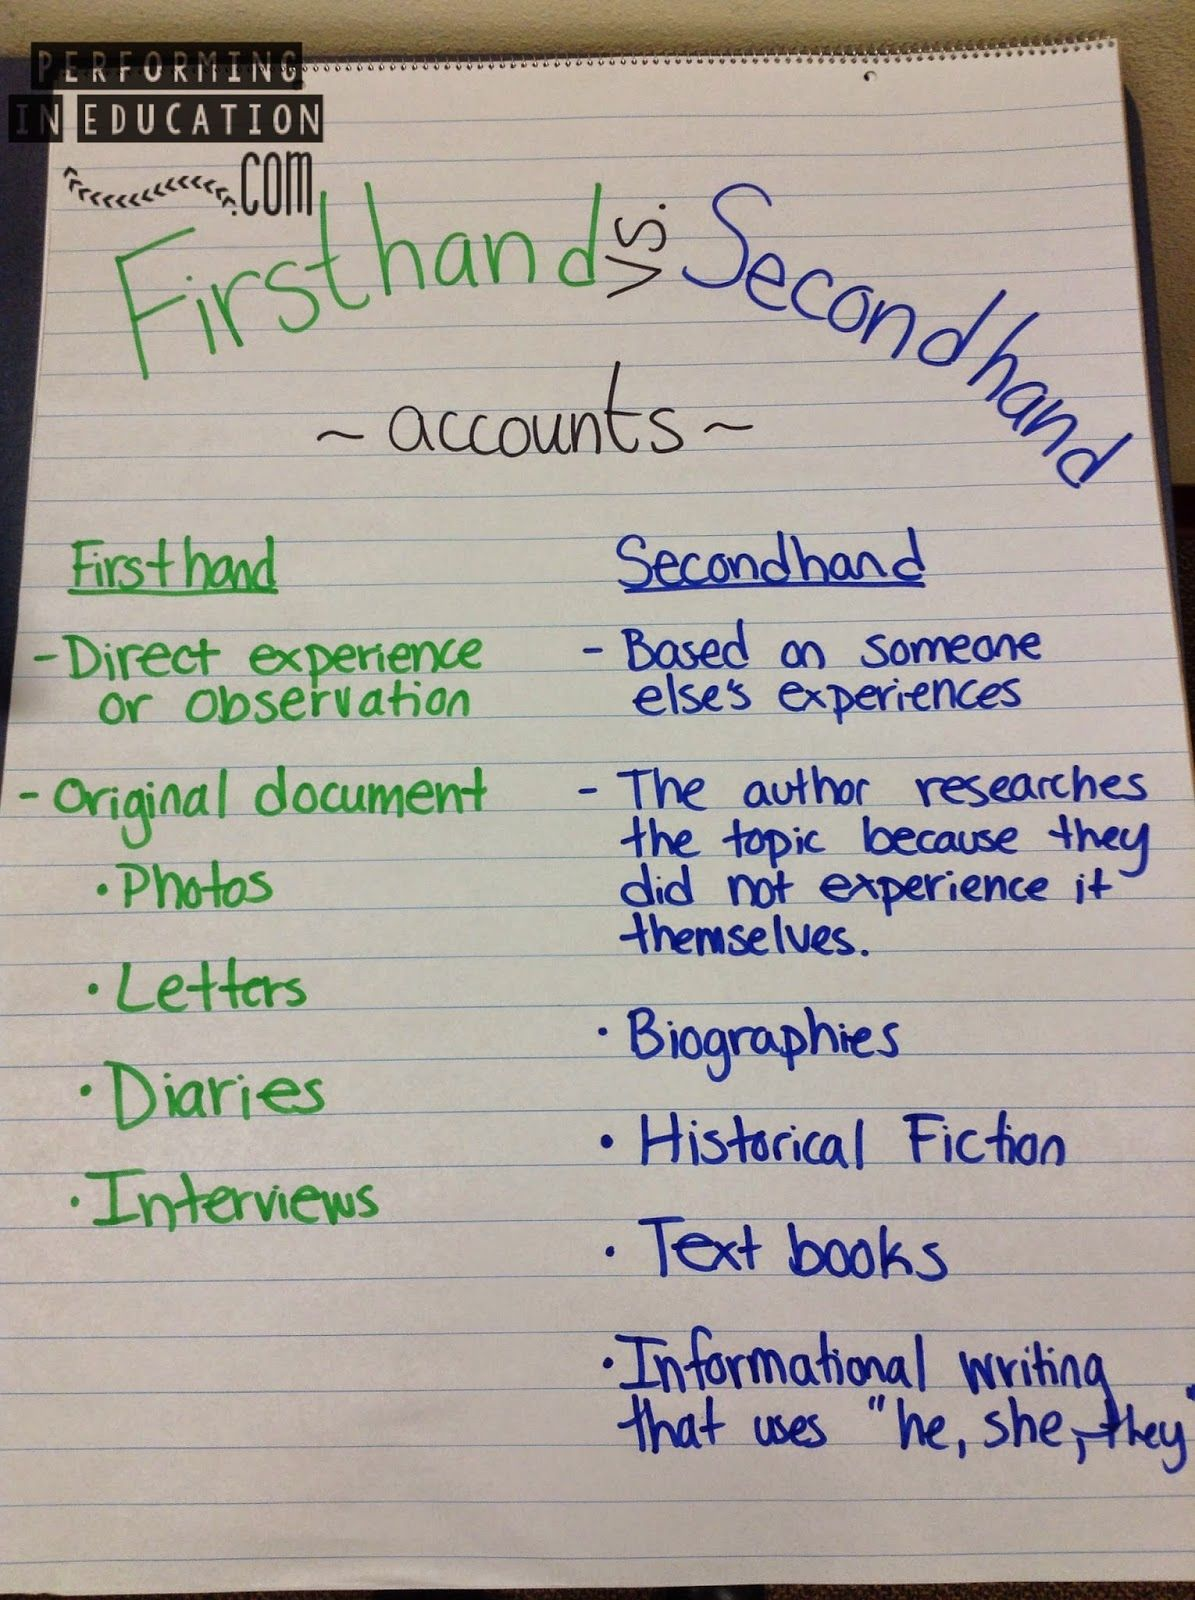 Researching Without Plagiarism For Informational Writing